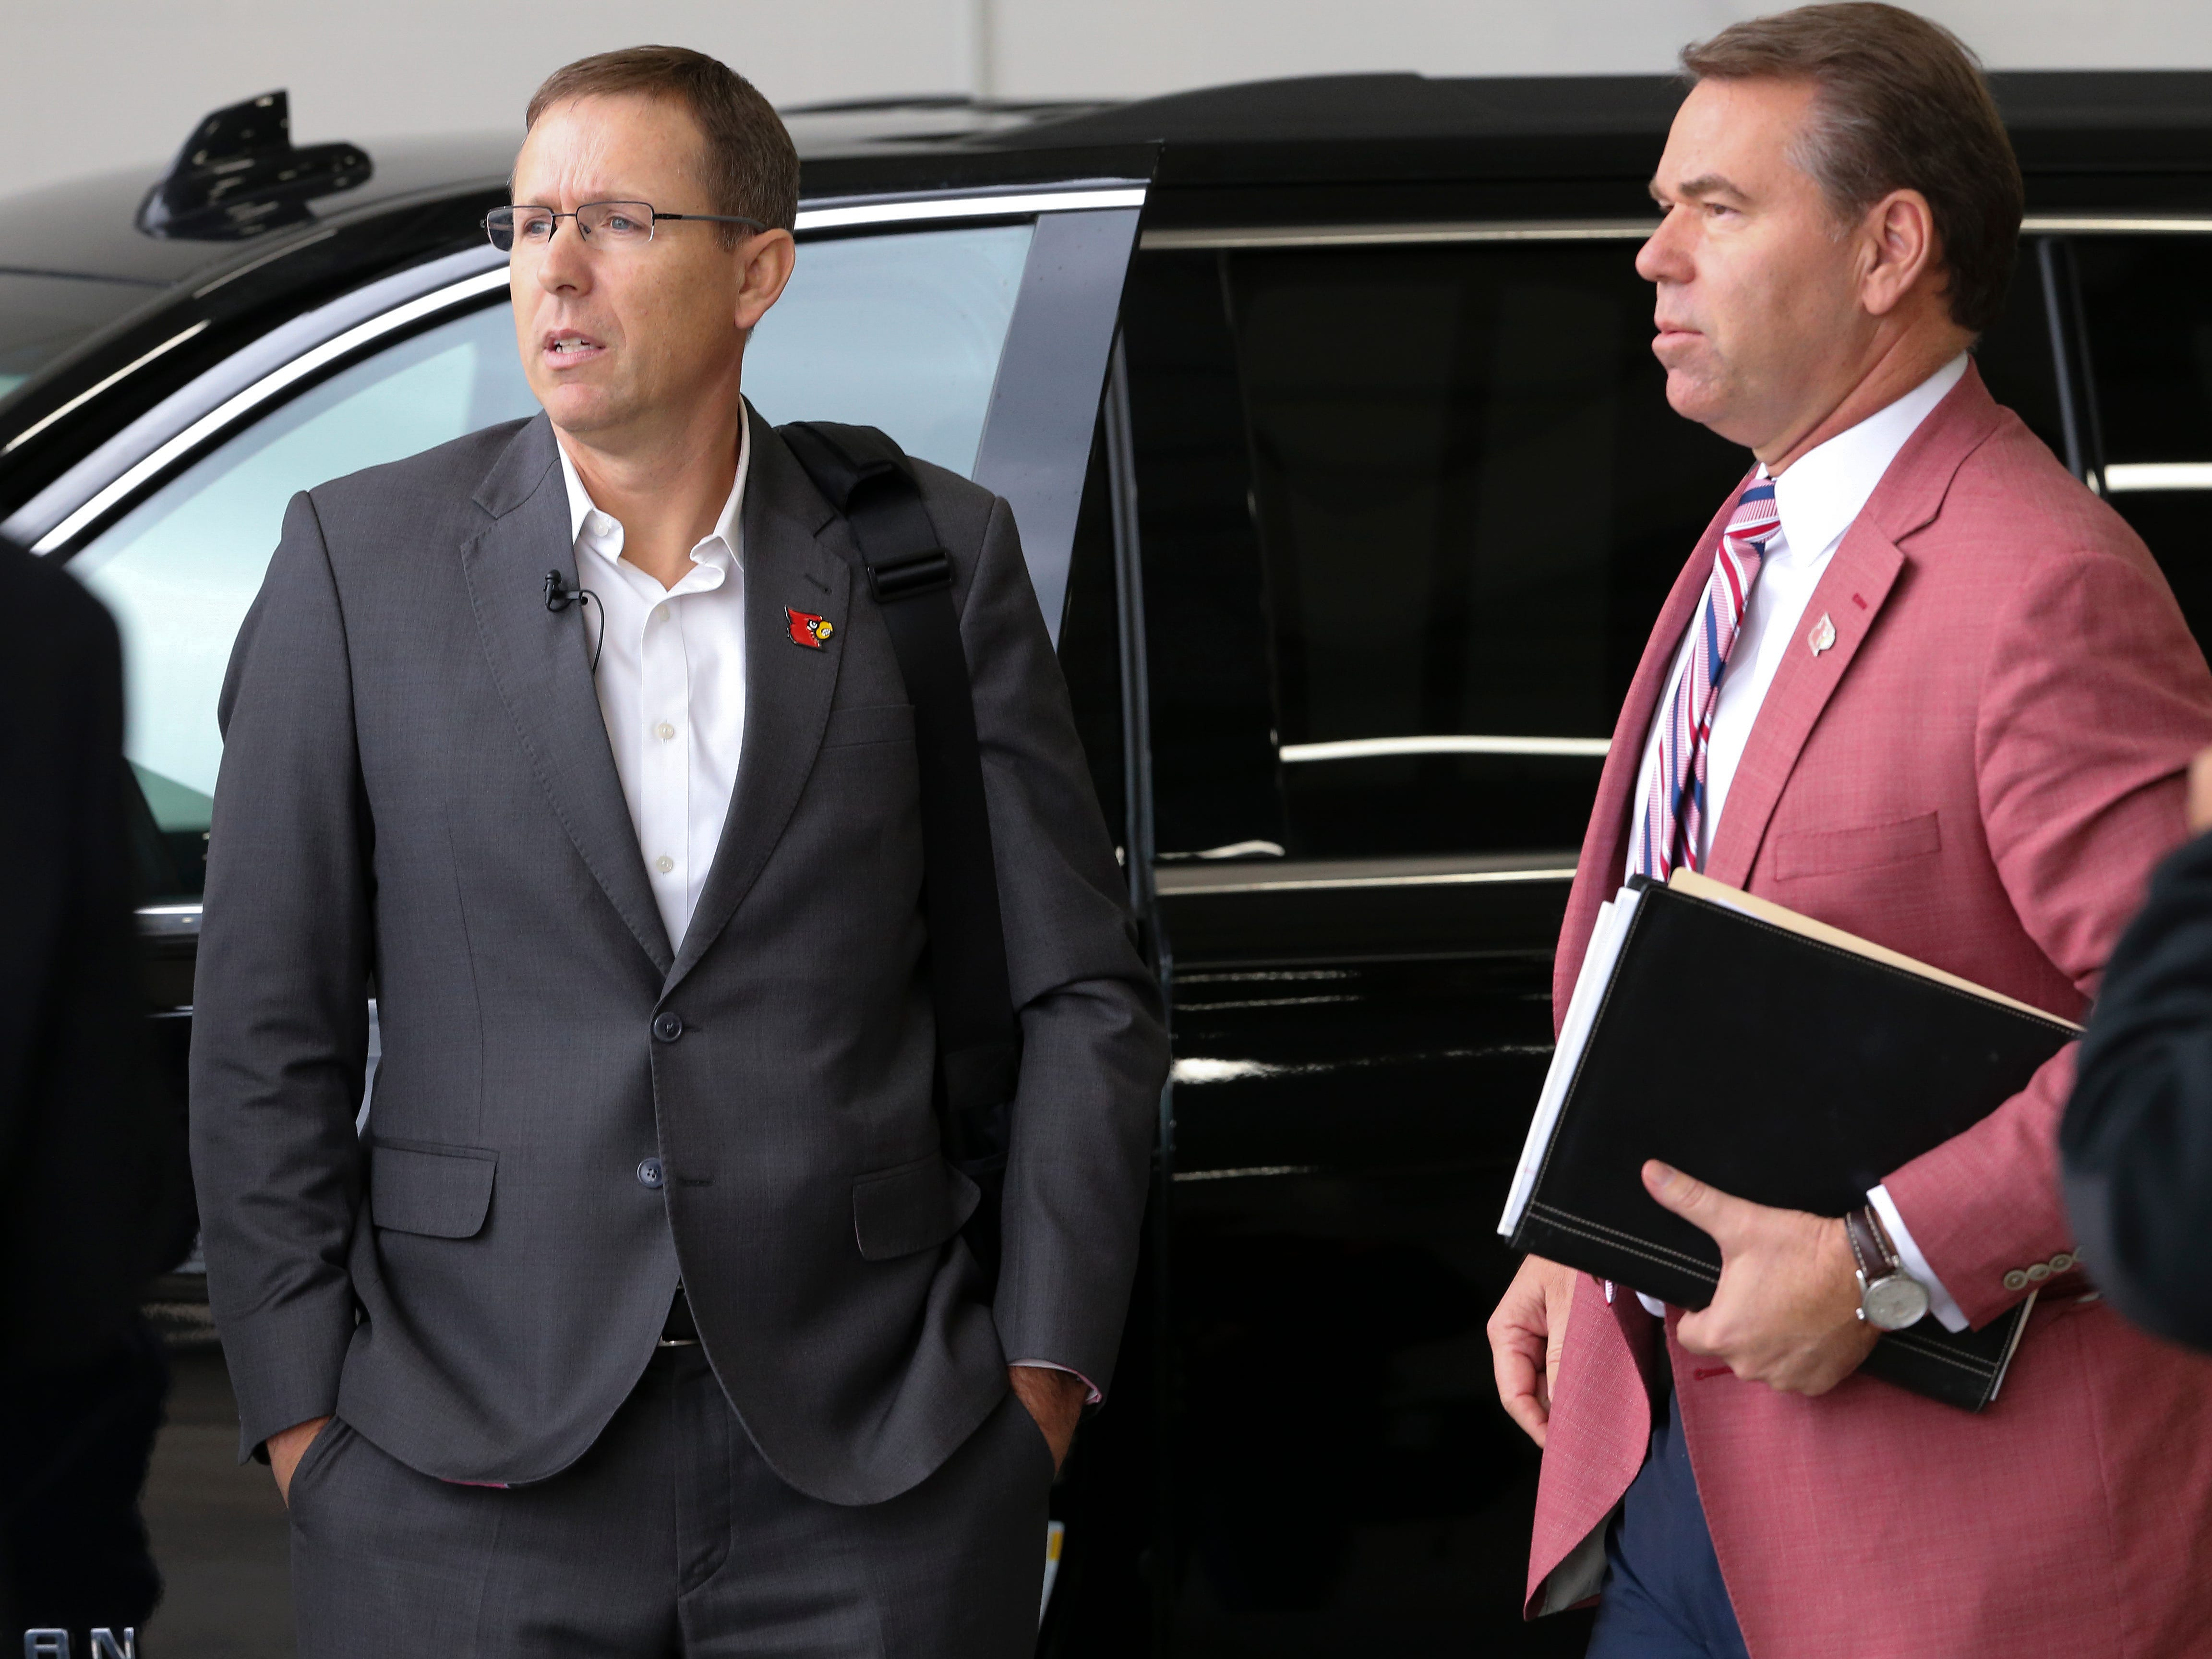 Appalachian State head football coach Scott Satterfield, left, waits inside an airport hangar with U of L athletic director Vince Tyra after exiting a private plane in Louisville.  Satterfield expects to be named the new head football coach at U of L.  